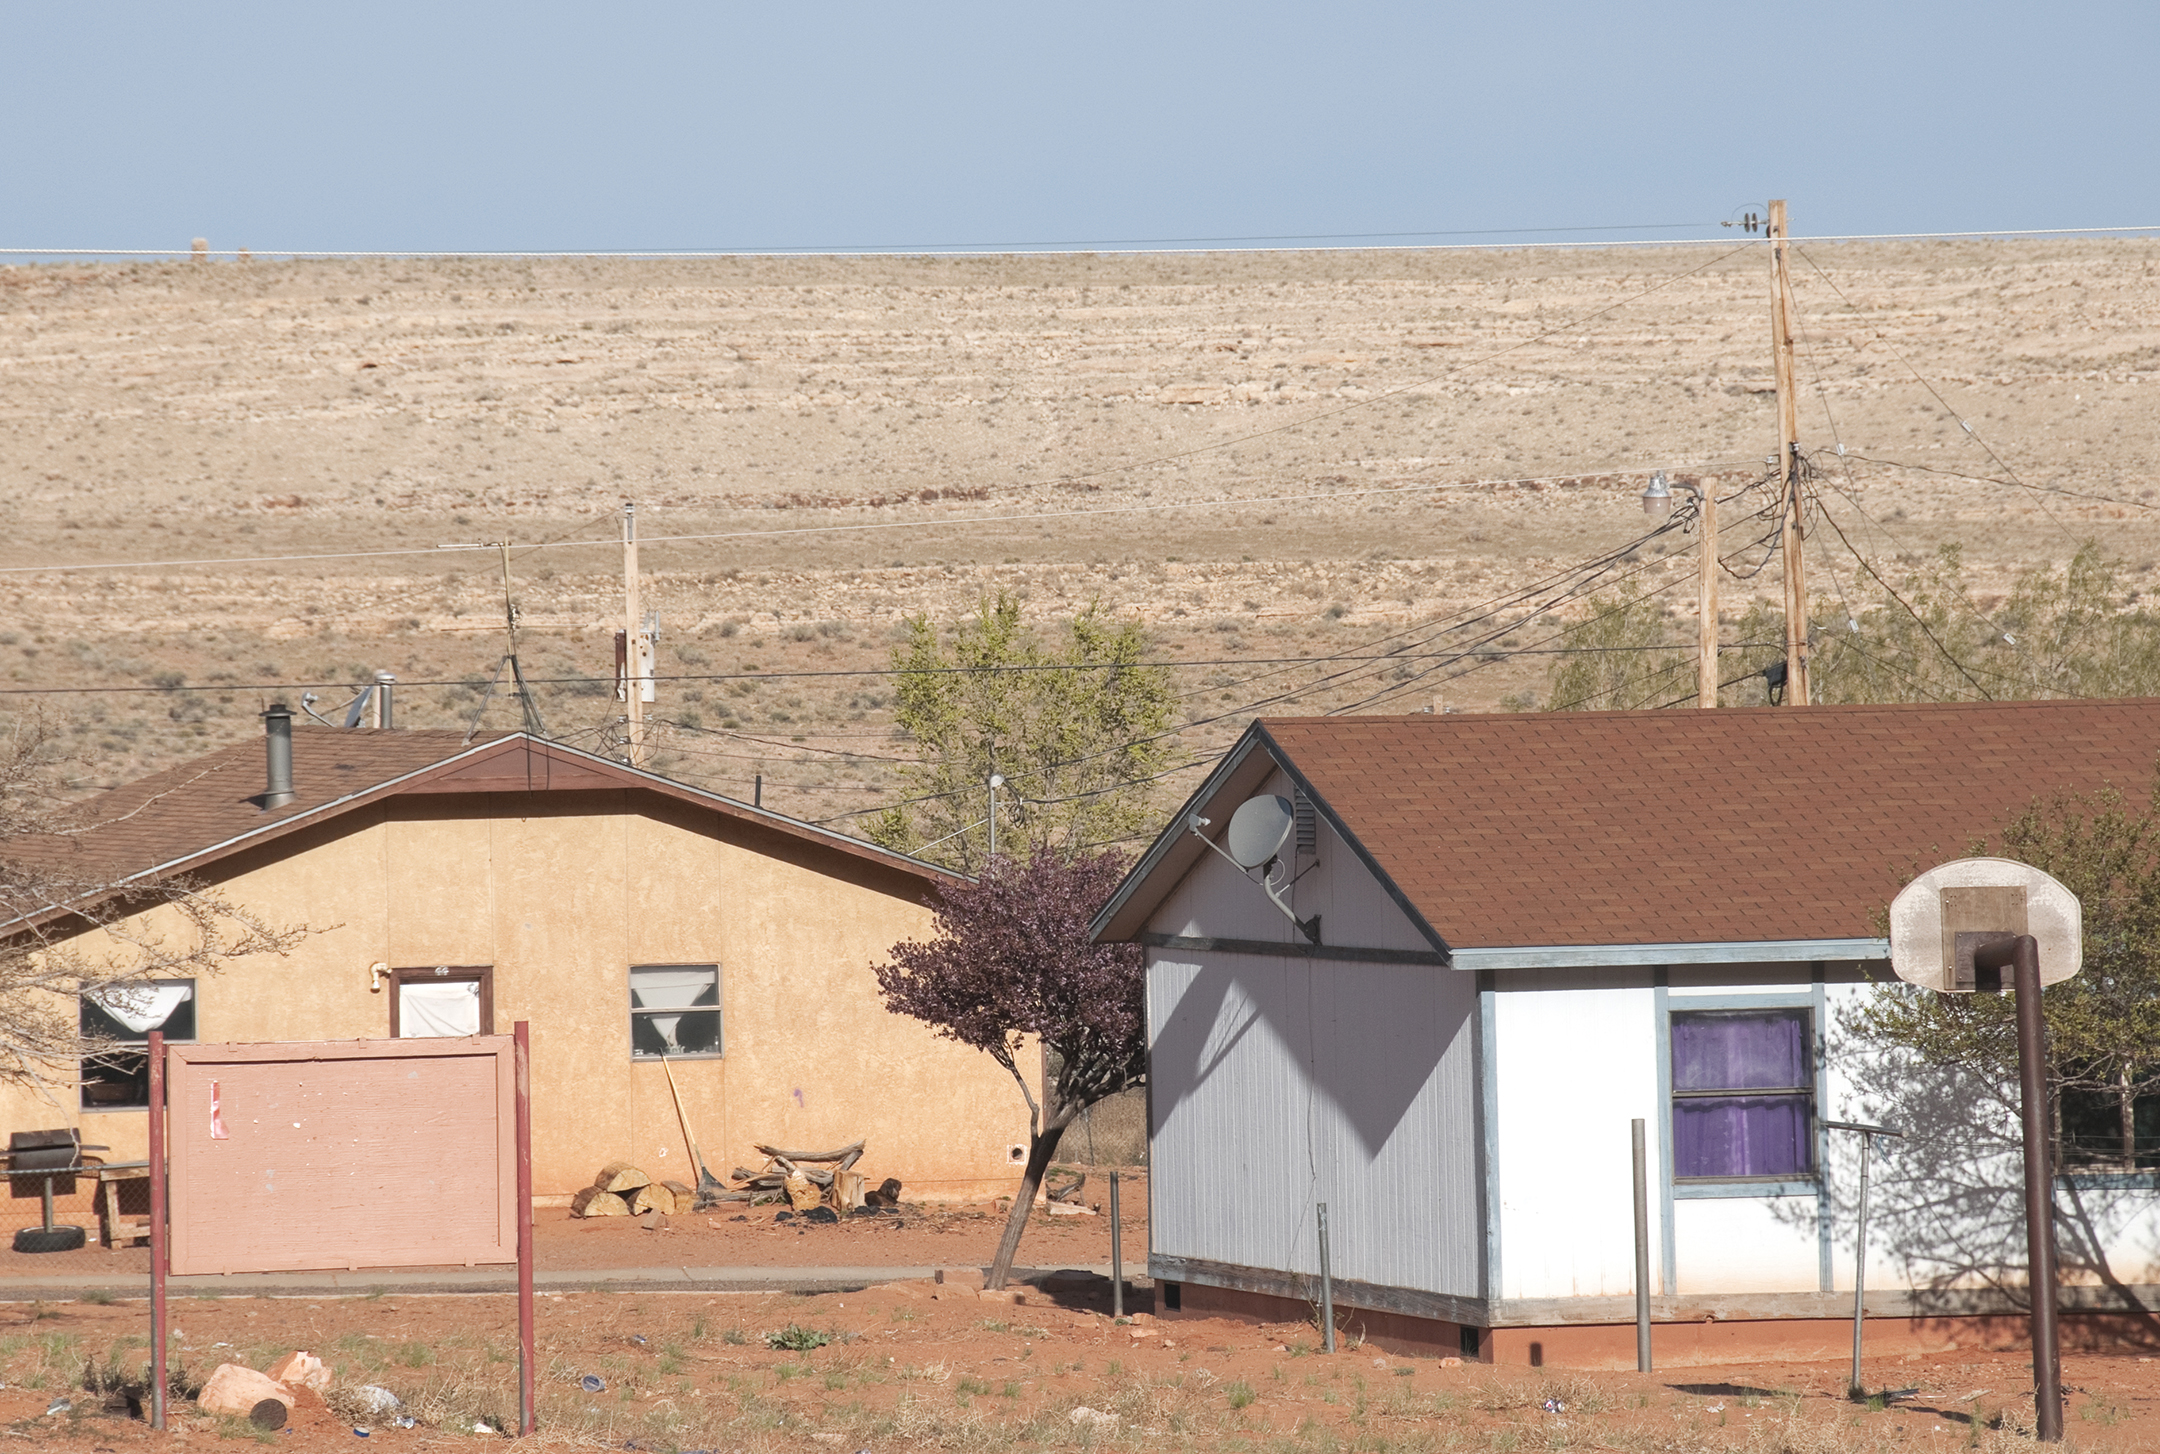 Houses on Navajo Reservation in northern Arizona